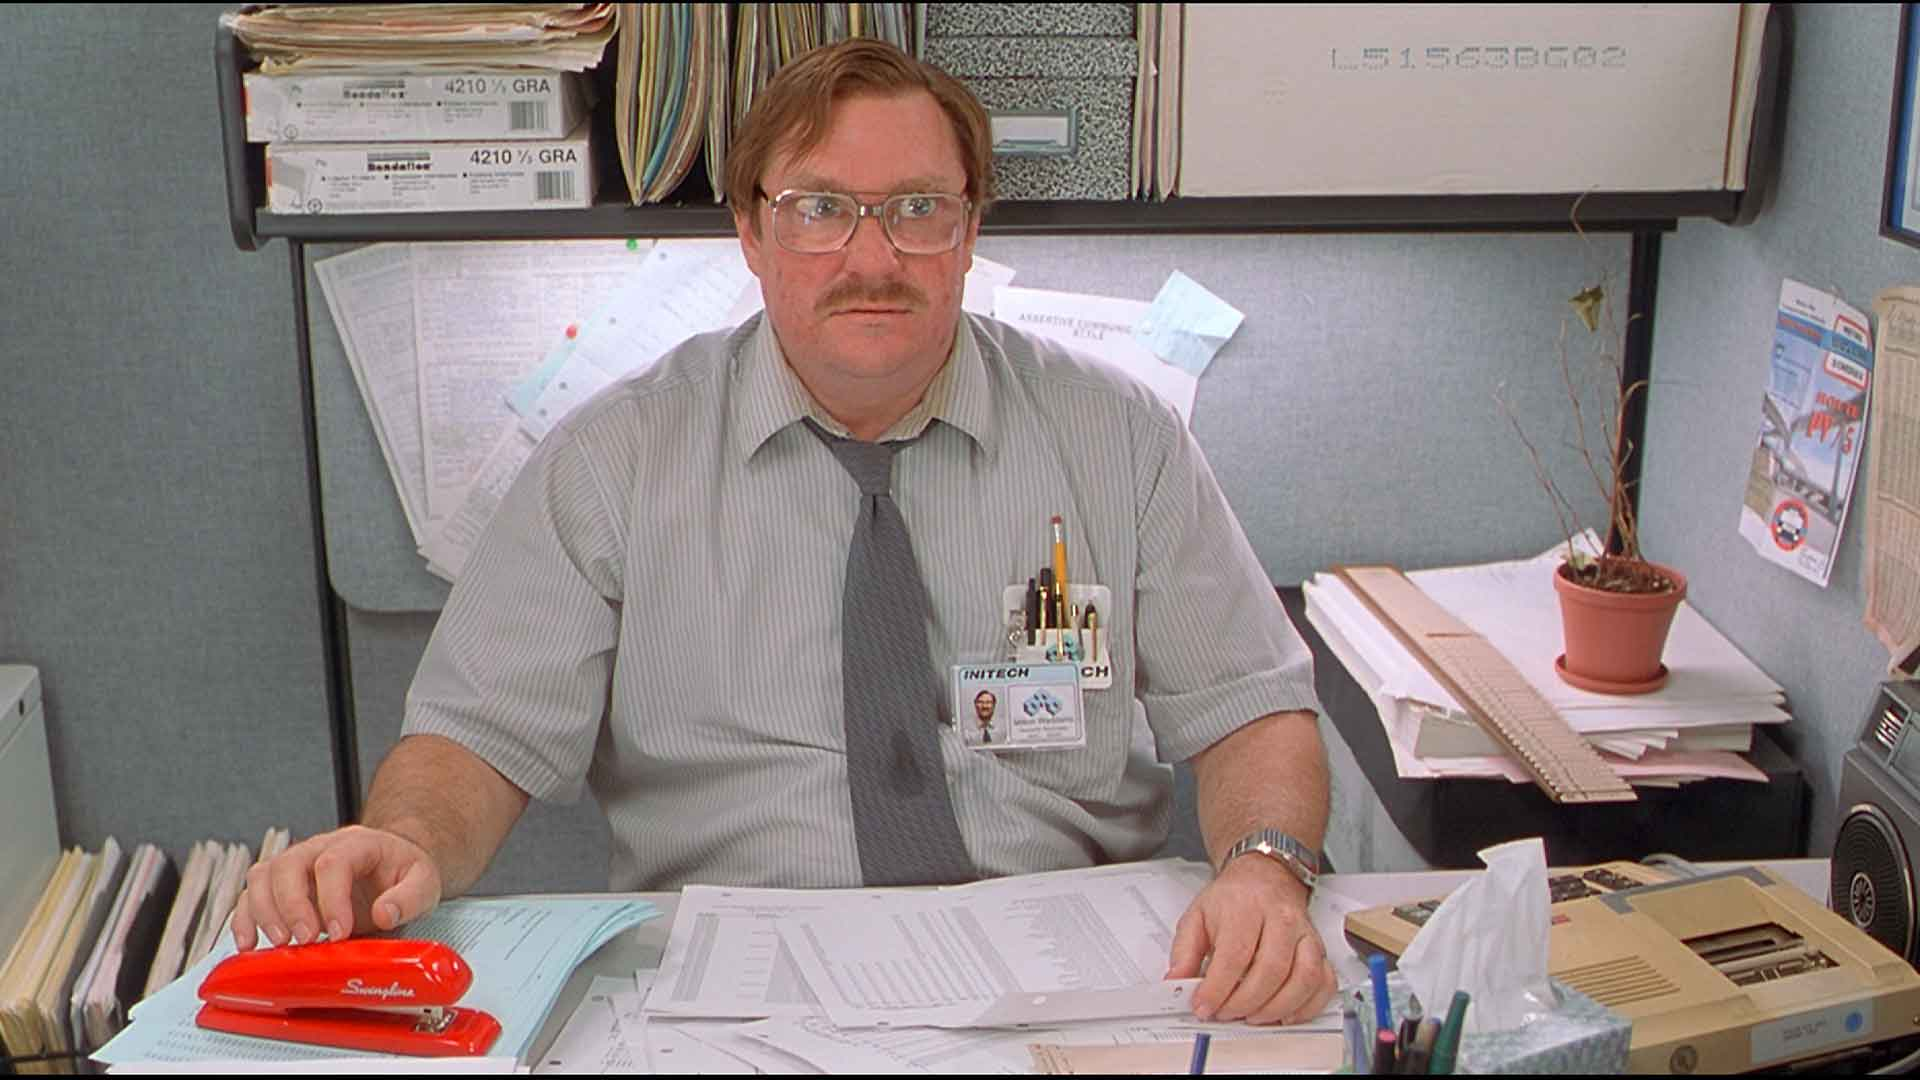 office space or room dvd company